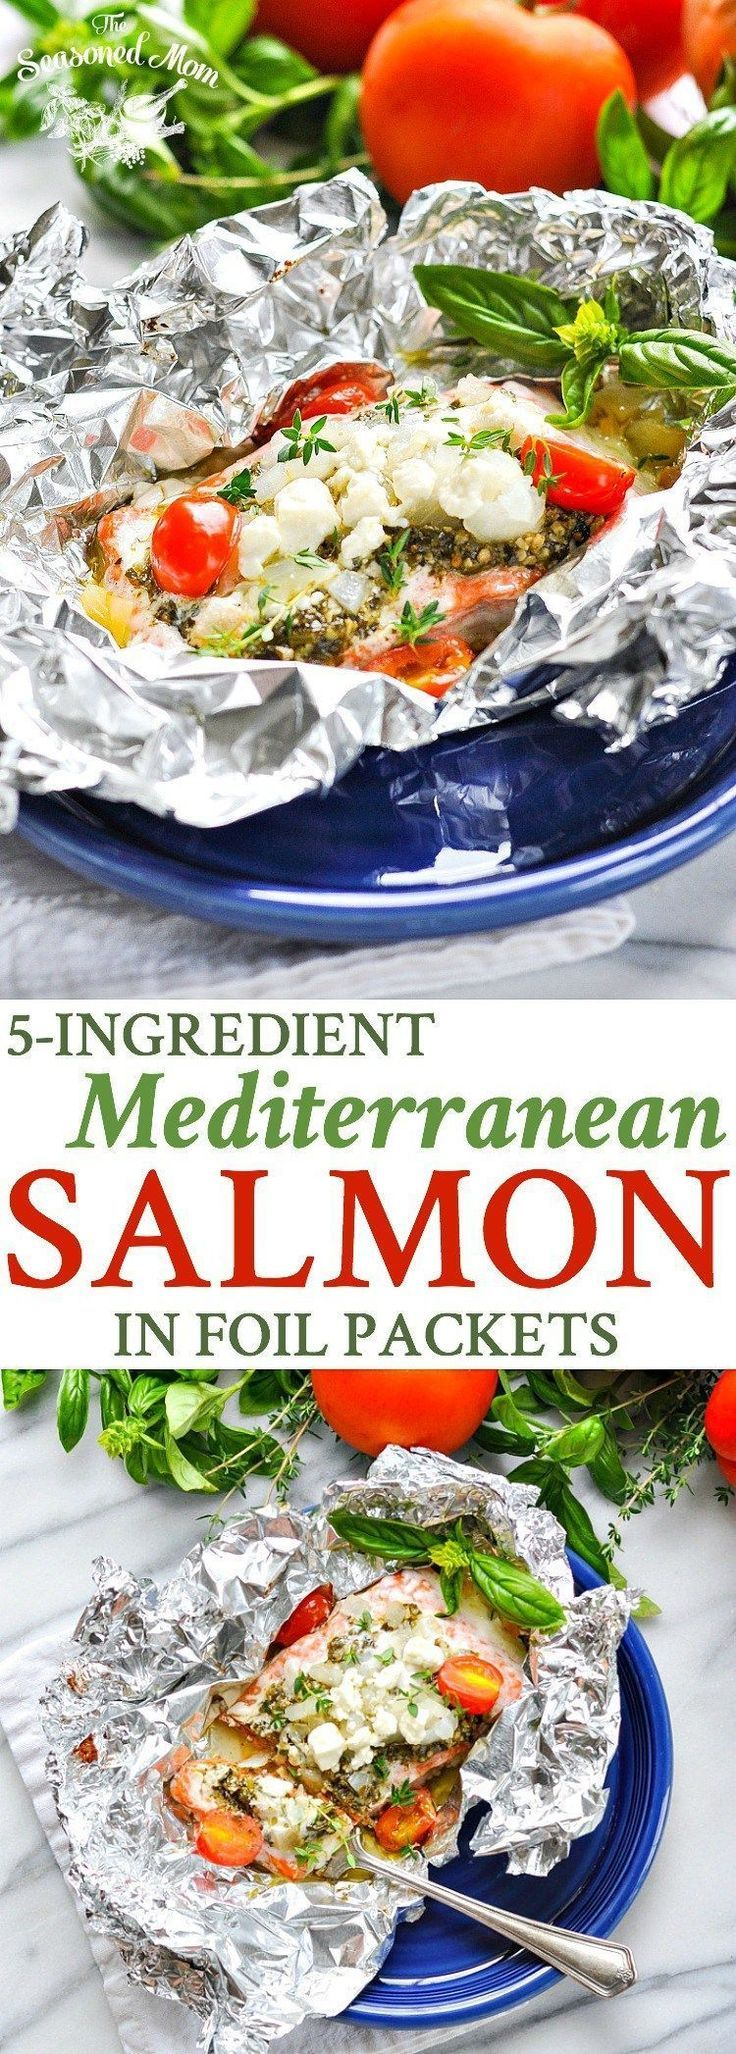 5-Ingredient Mediterranean Salmon in Foil Packets | Seafood Recipes | Easy Dinner Recipes | Dinner Ideas | Healthy 5 Ingredient or Less Recipes | Healthy Recipes | Salmon Recipes Baked | Camping Food | Camping Meals | Gluten Free #seafoodrecipes